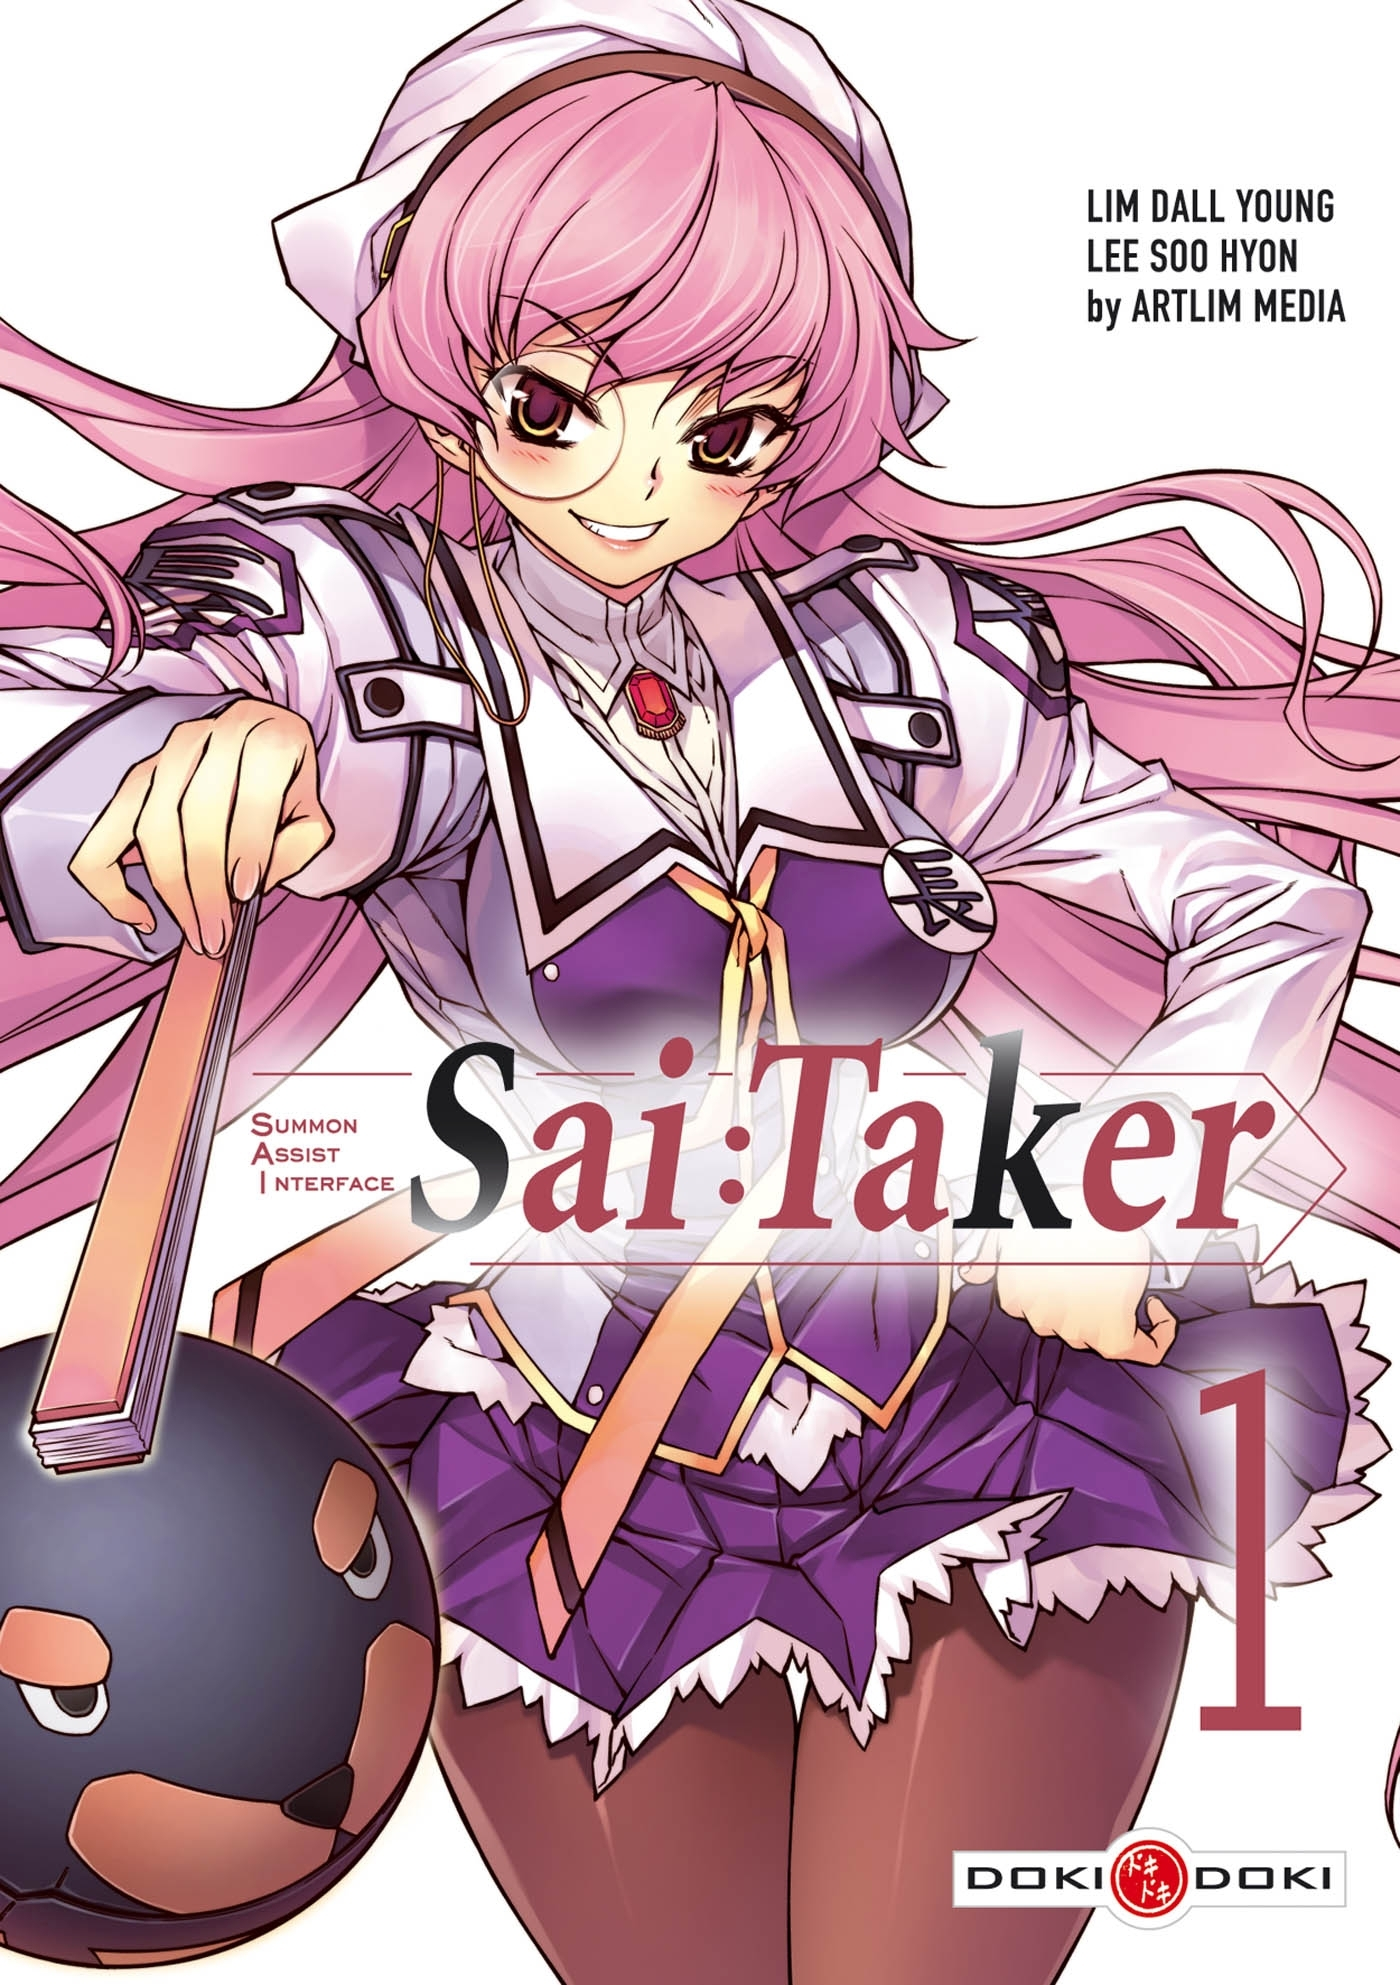 SAI TAKER - VOLUME 1